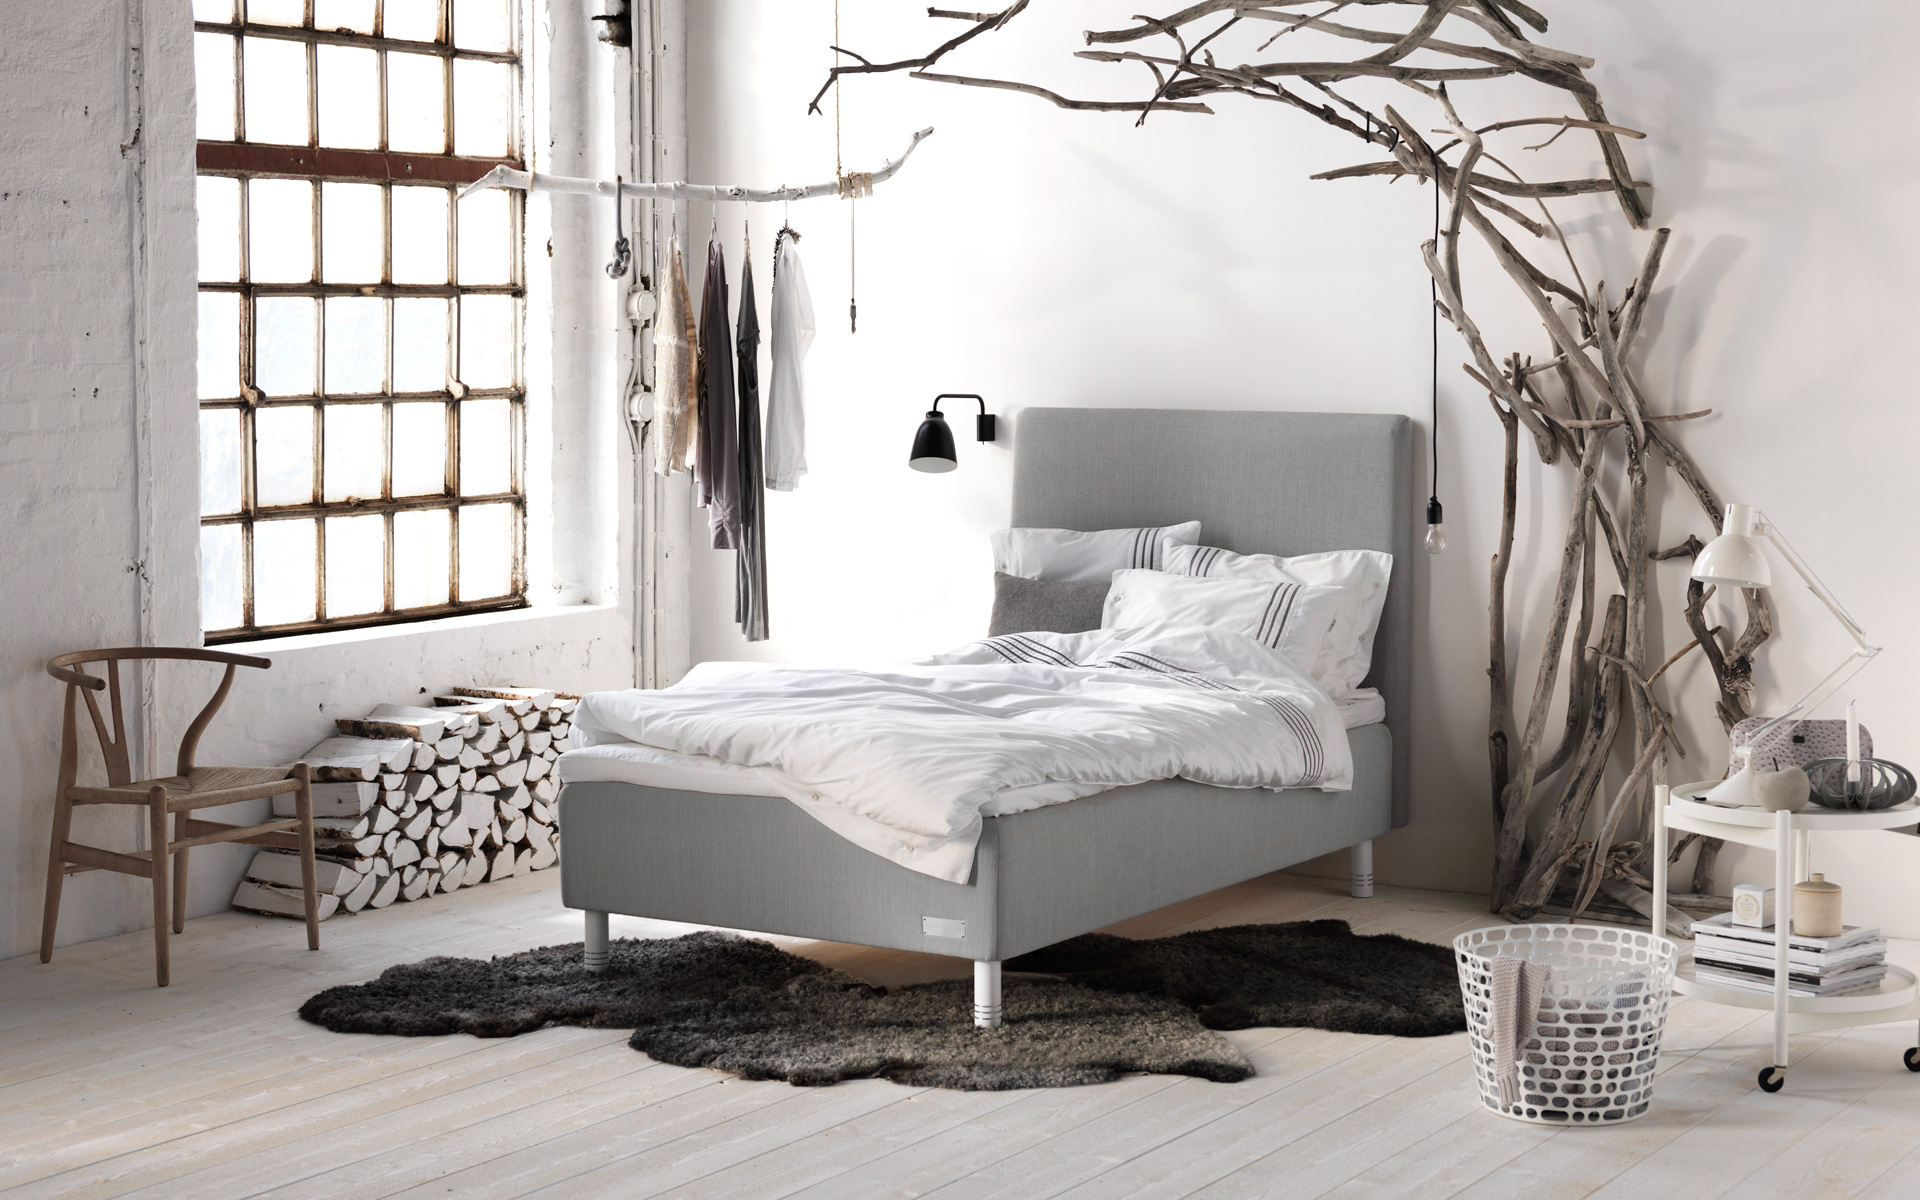 k chen boxspring betten wohnraumm bel u v m wohndesign freising. Black Bedroom Furniture Sets. Home Design Ideas